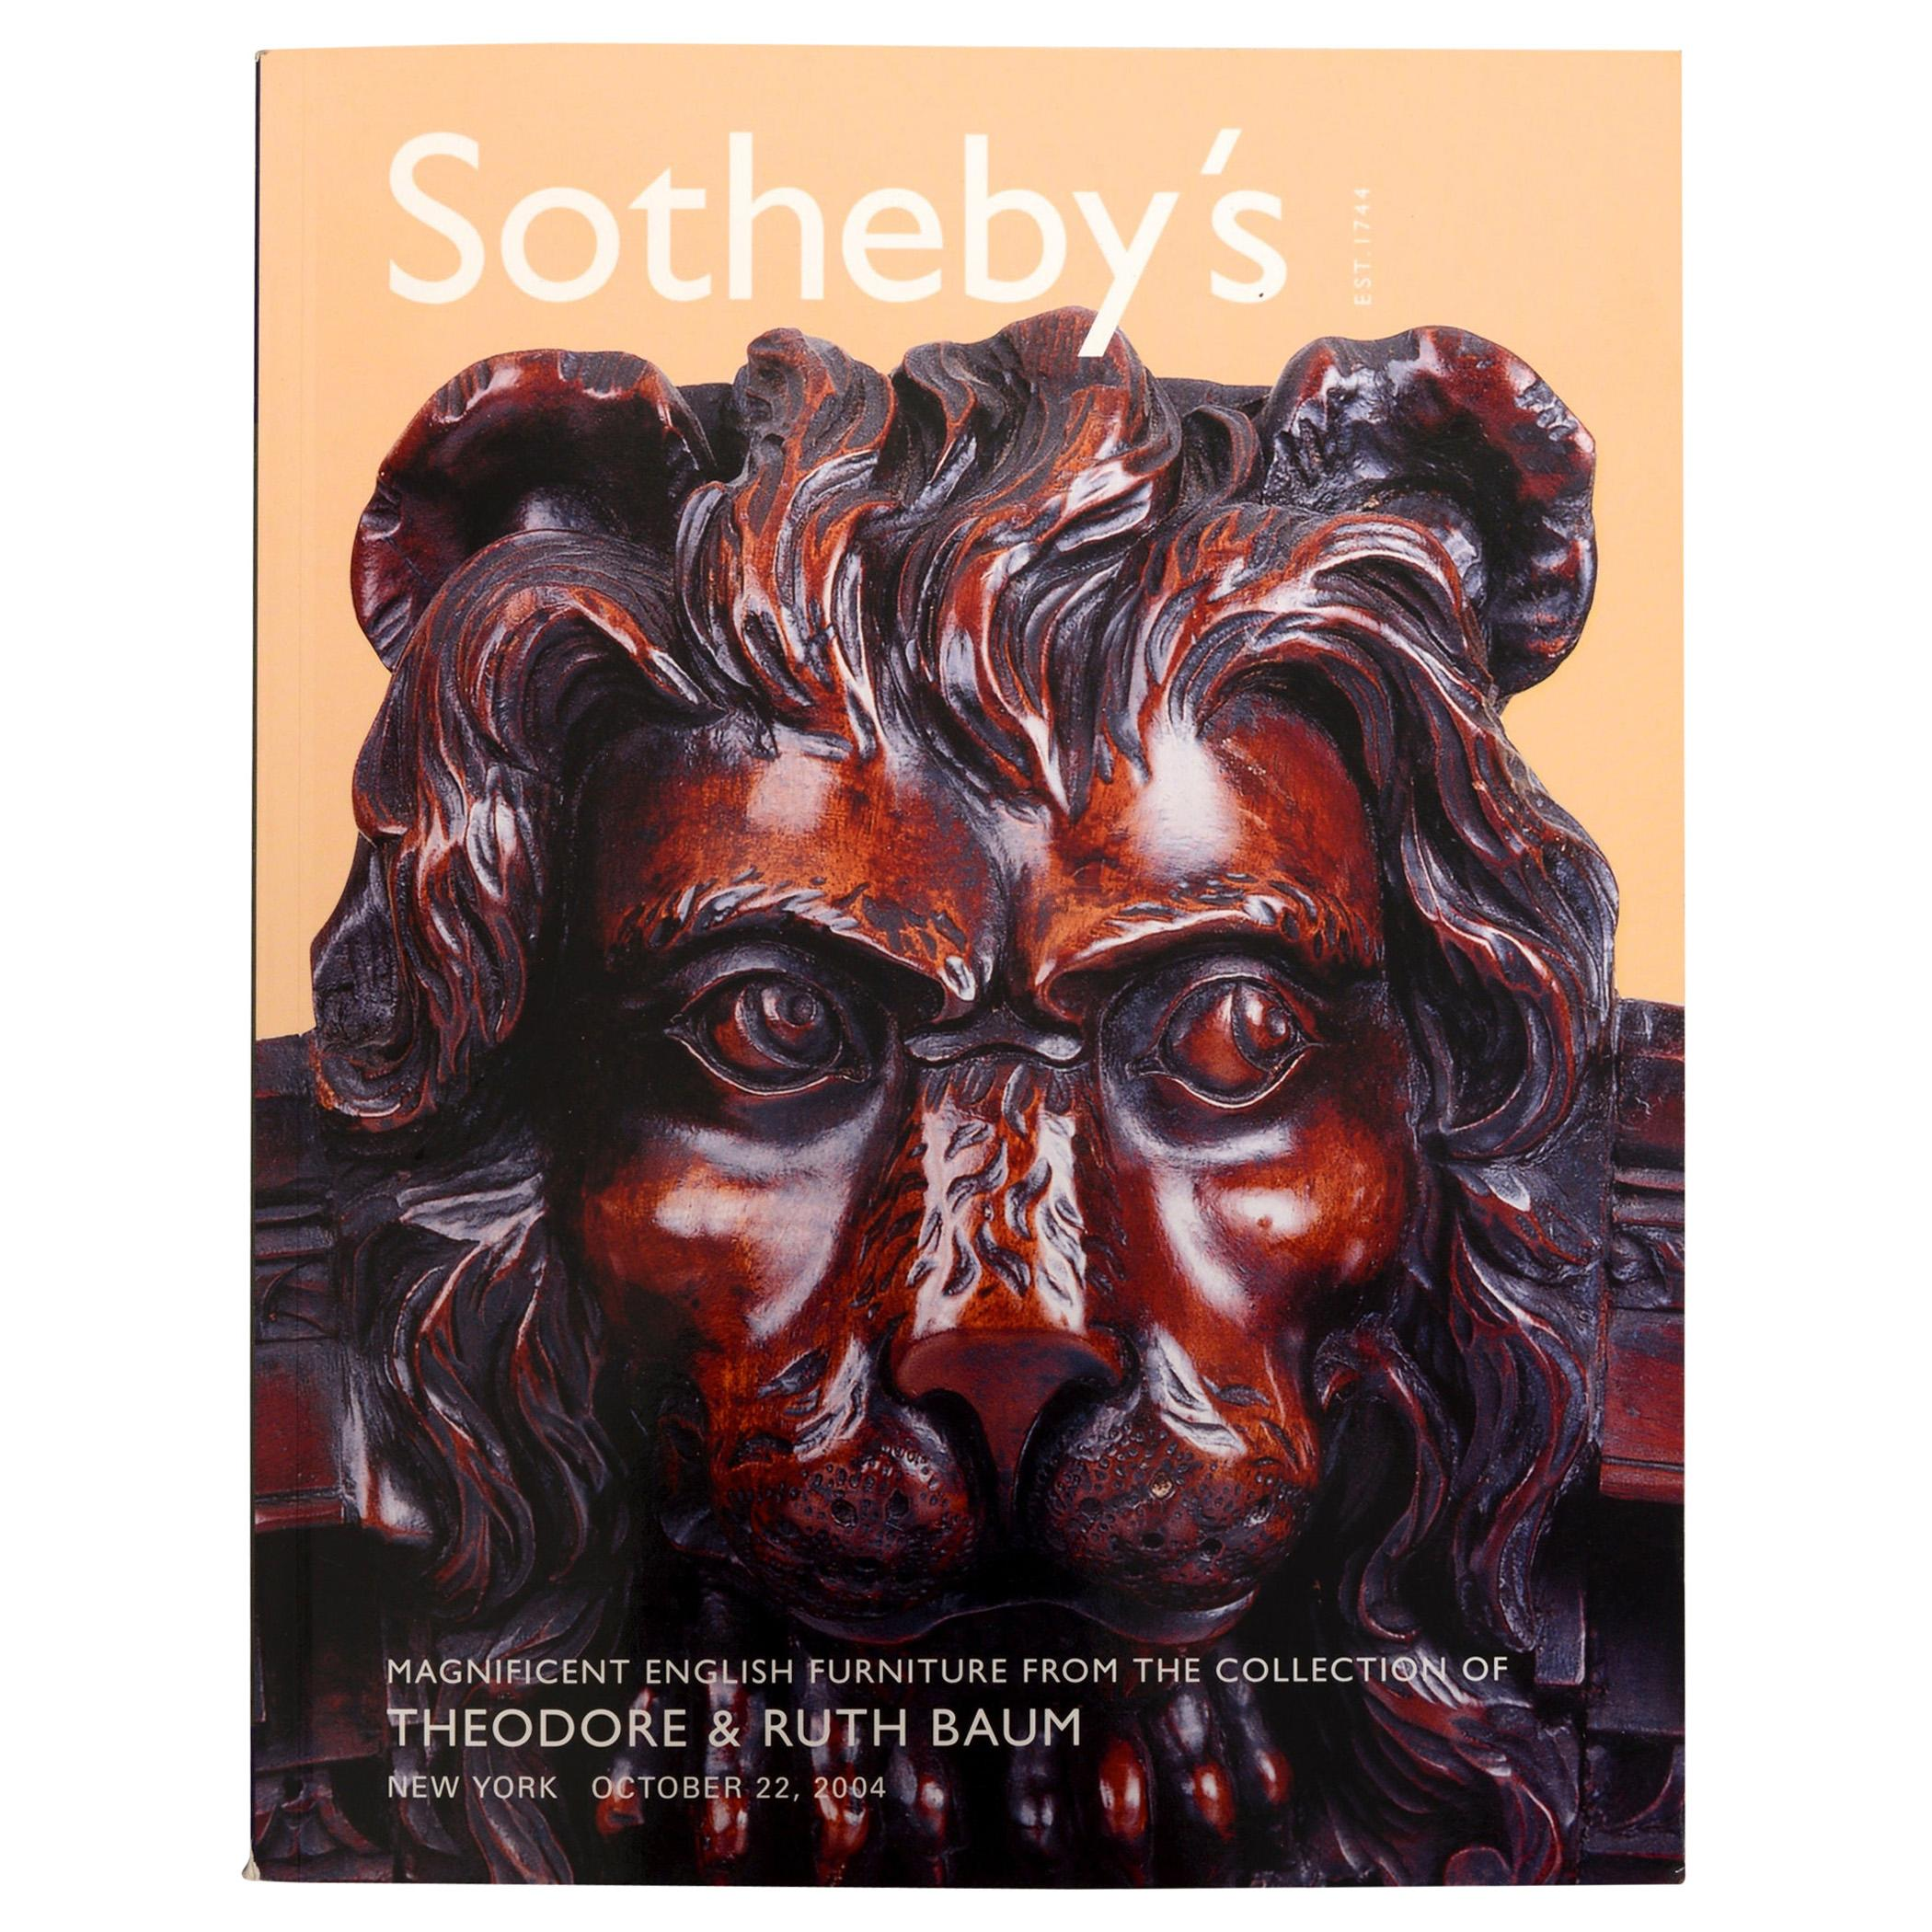 Sotheby's Magnificent English Furniture from the Collection of Theodore Baum